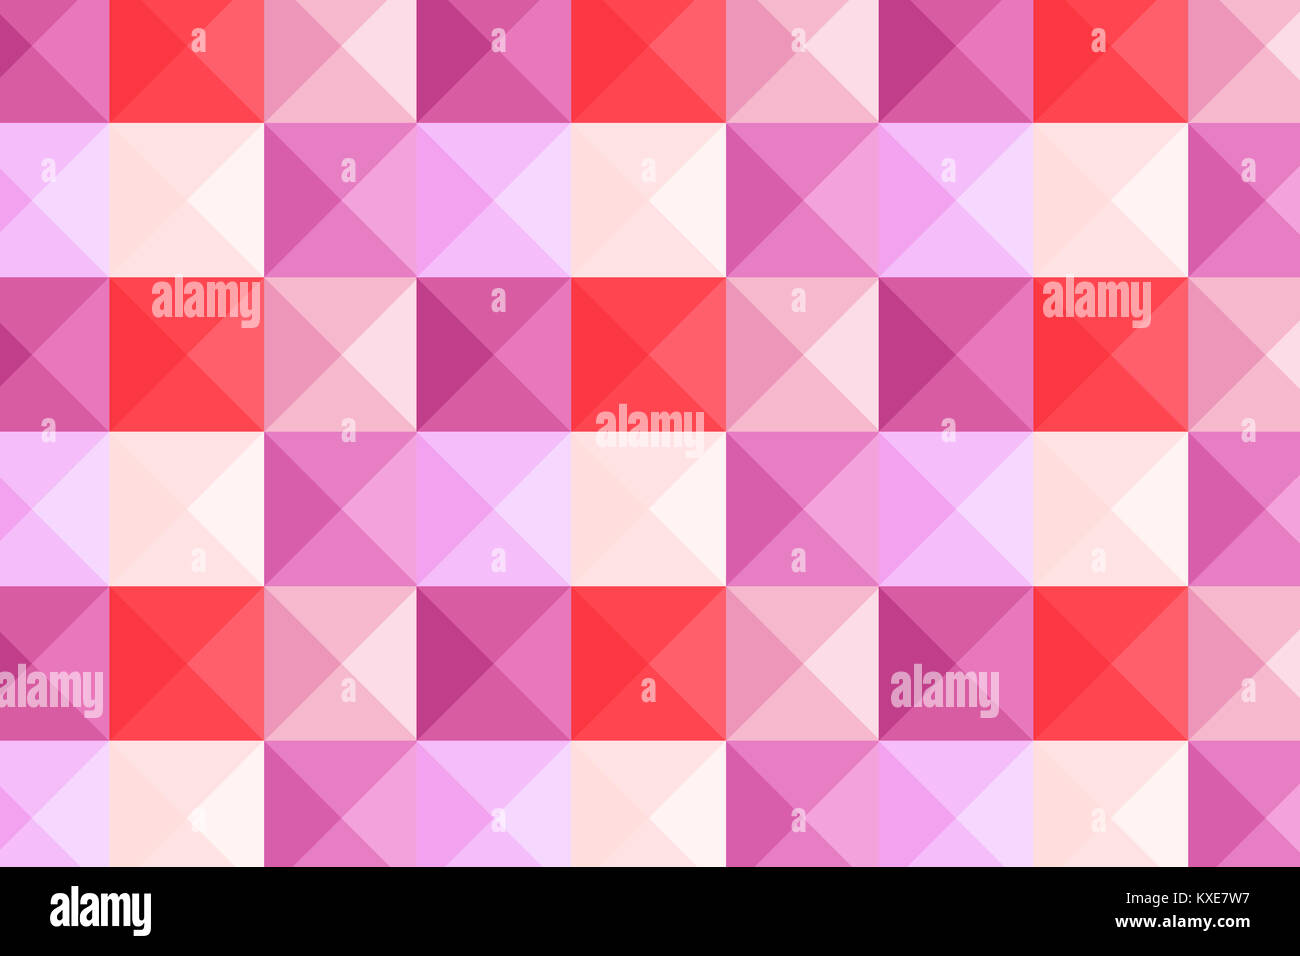 Quilt Pattern Stock Photos & Quilt Pattern Stock Images - Alamy